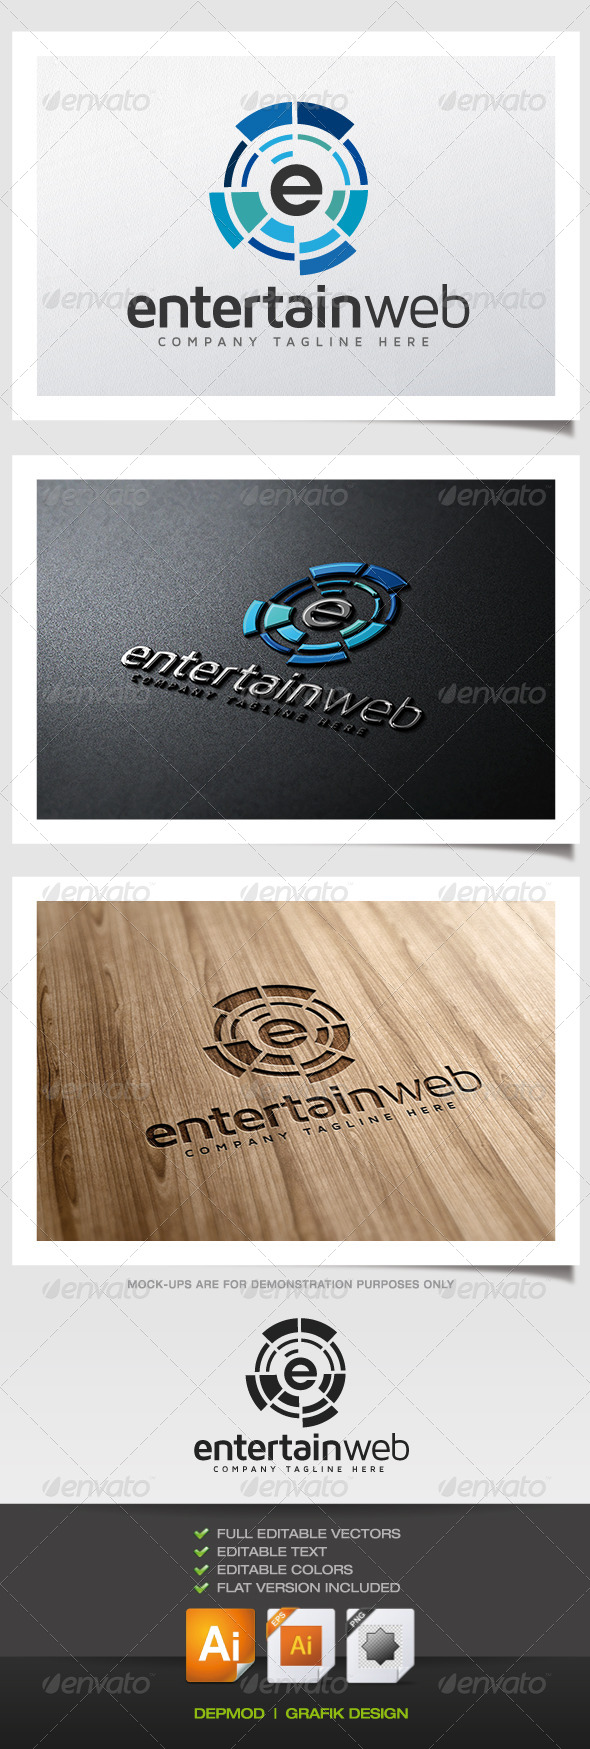 GraphicRiver Entertain Web Logo 5622993